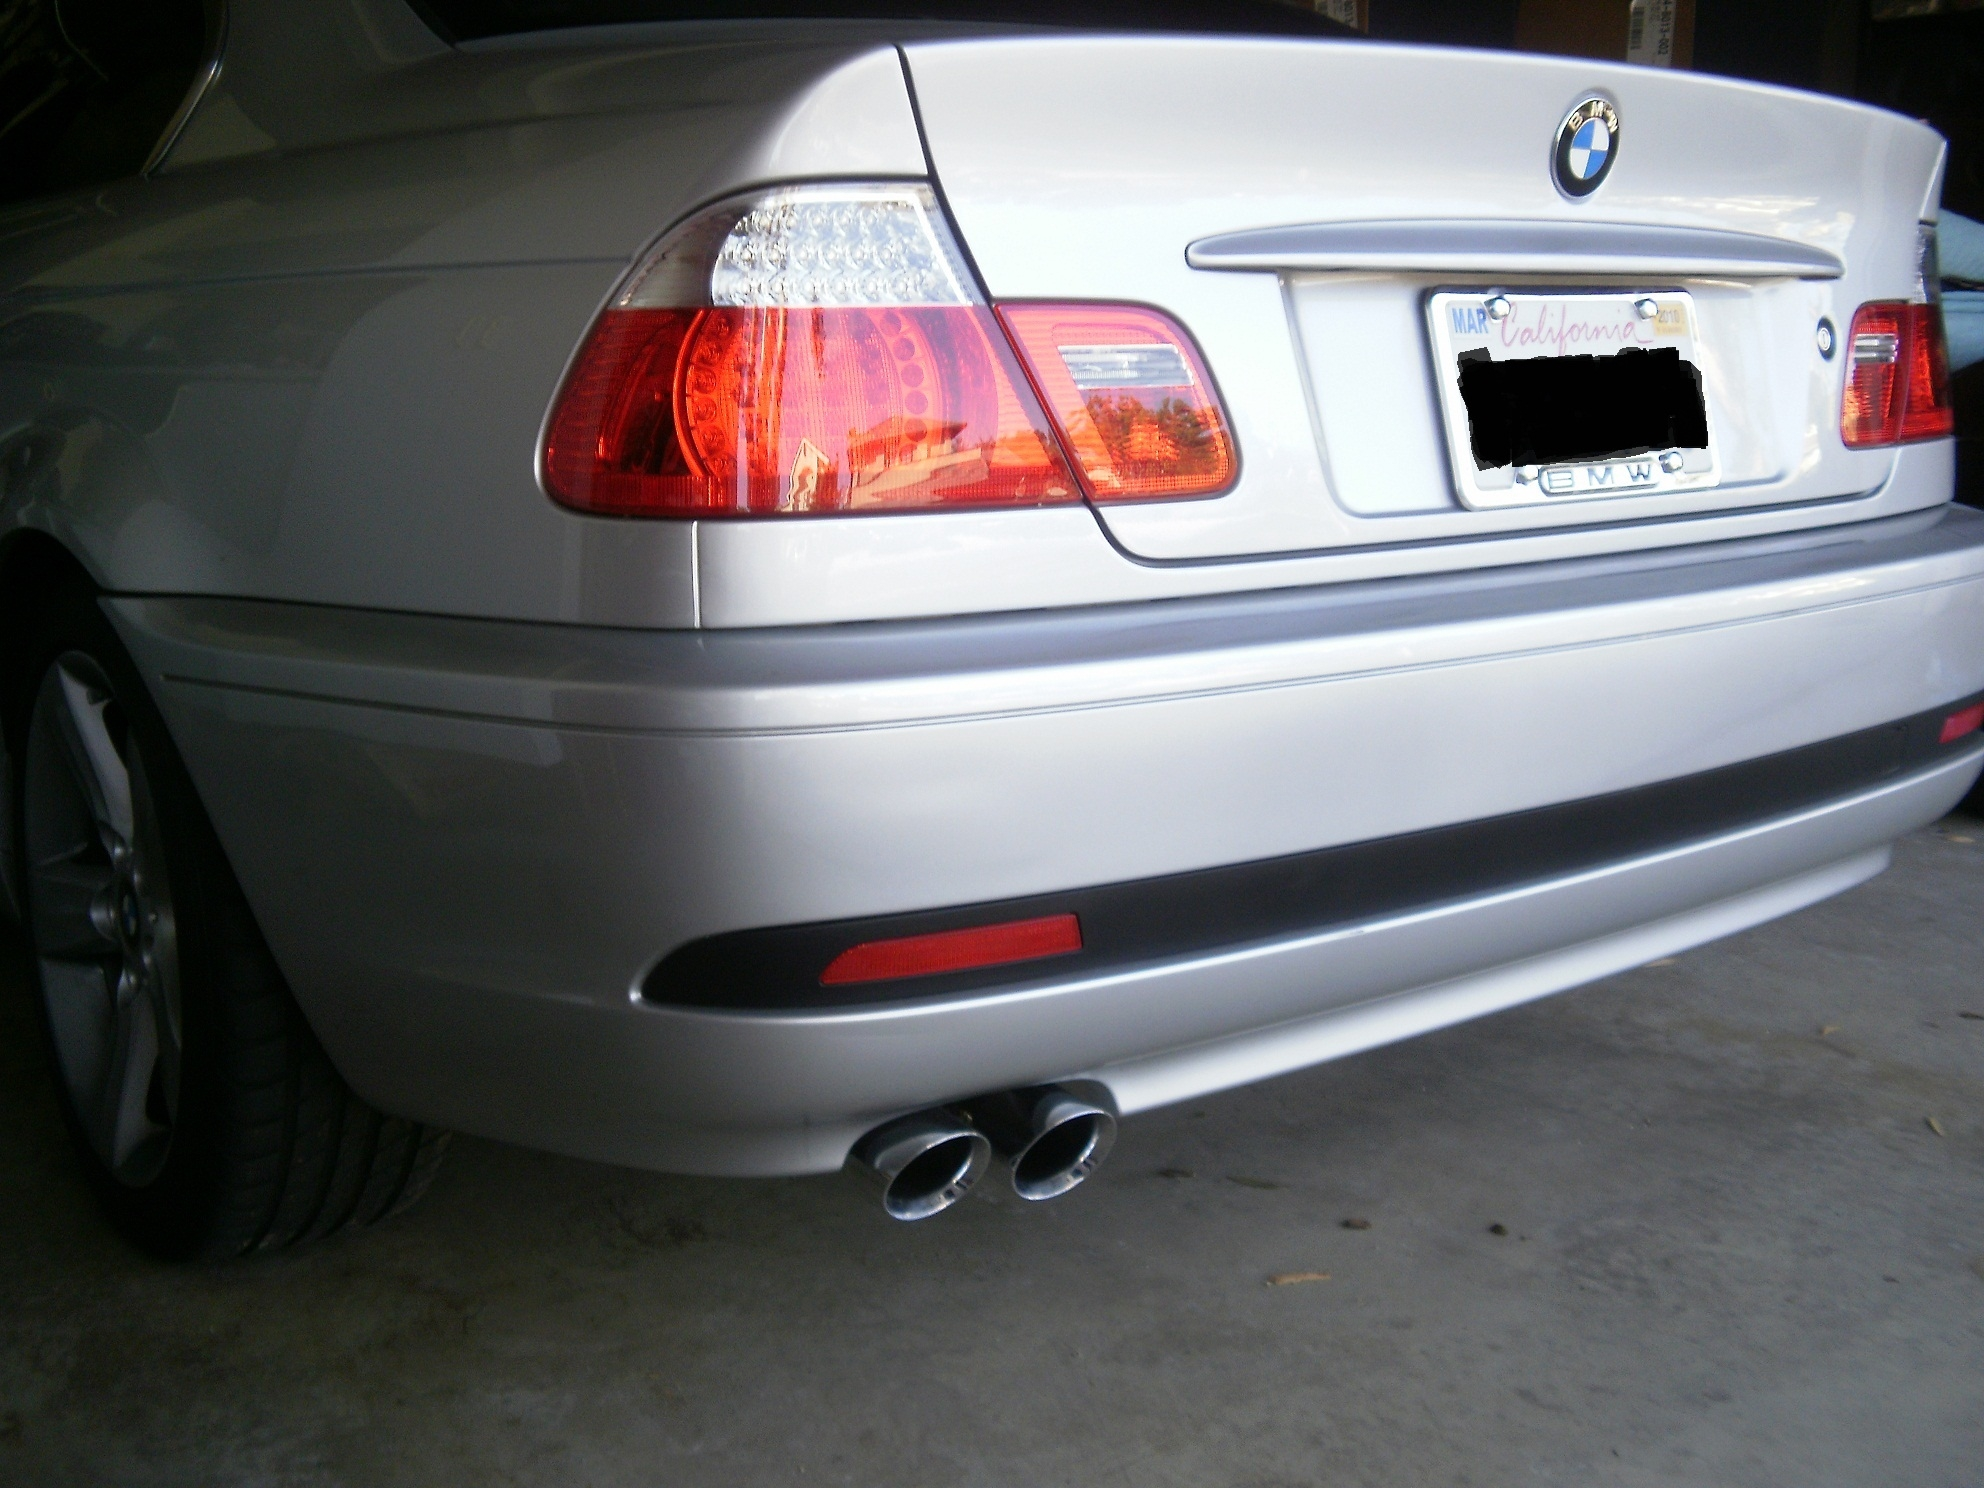 91 Red Z28 2006 Bmw 3 Series Specs Photos Modification